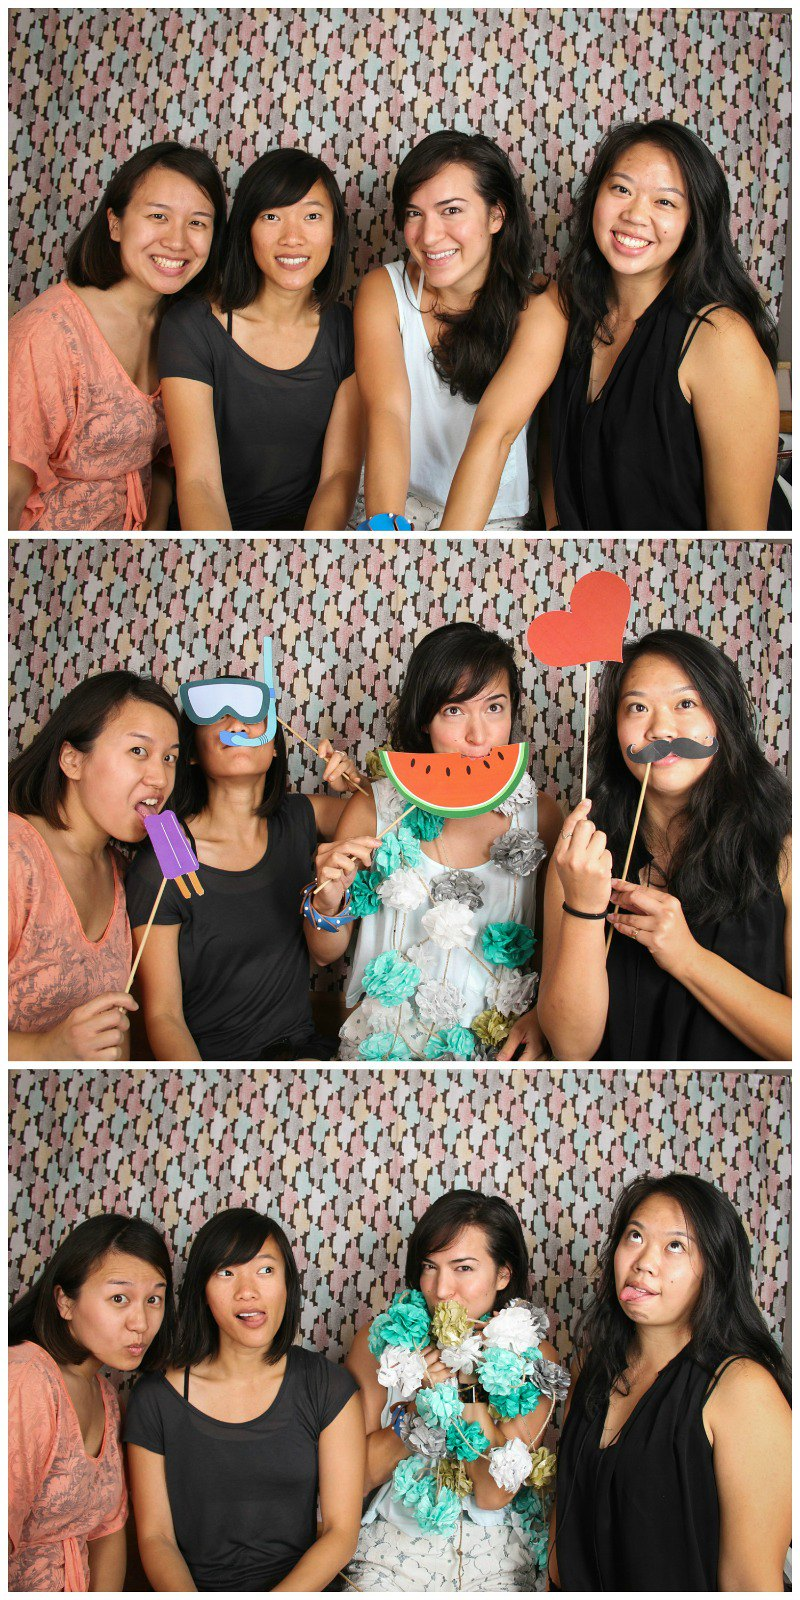 Denver Girls Trip Photo Booth (Picture Me Camping Photo Booth) | shirley shirley bo birley Blog